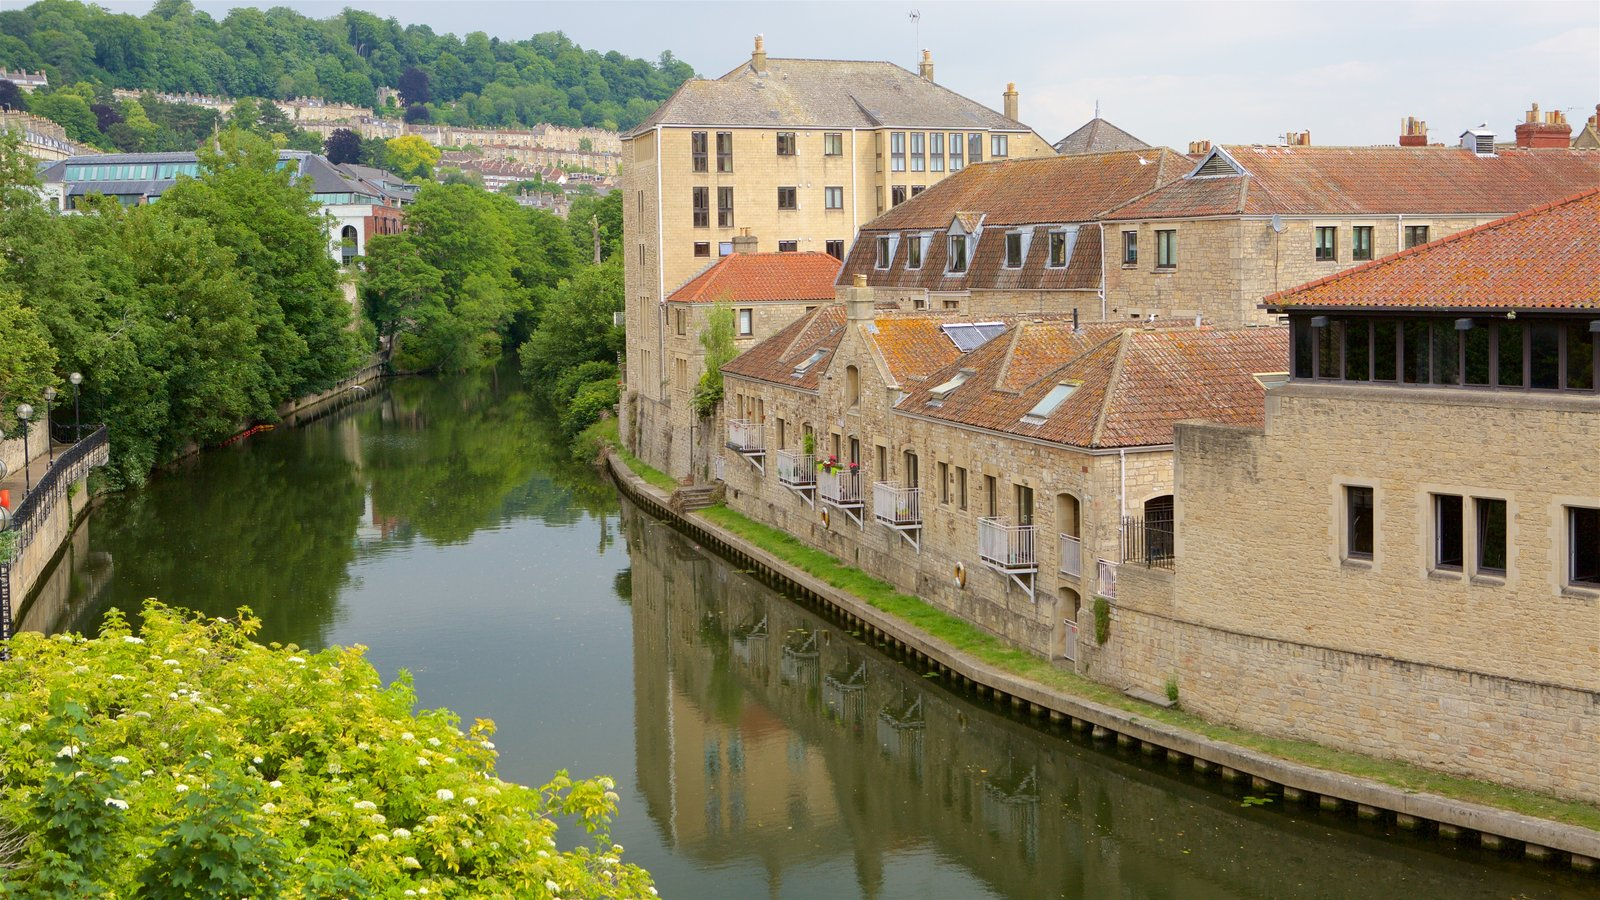 Pulteney Bridge which includes a small town or village and a river or creek